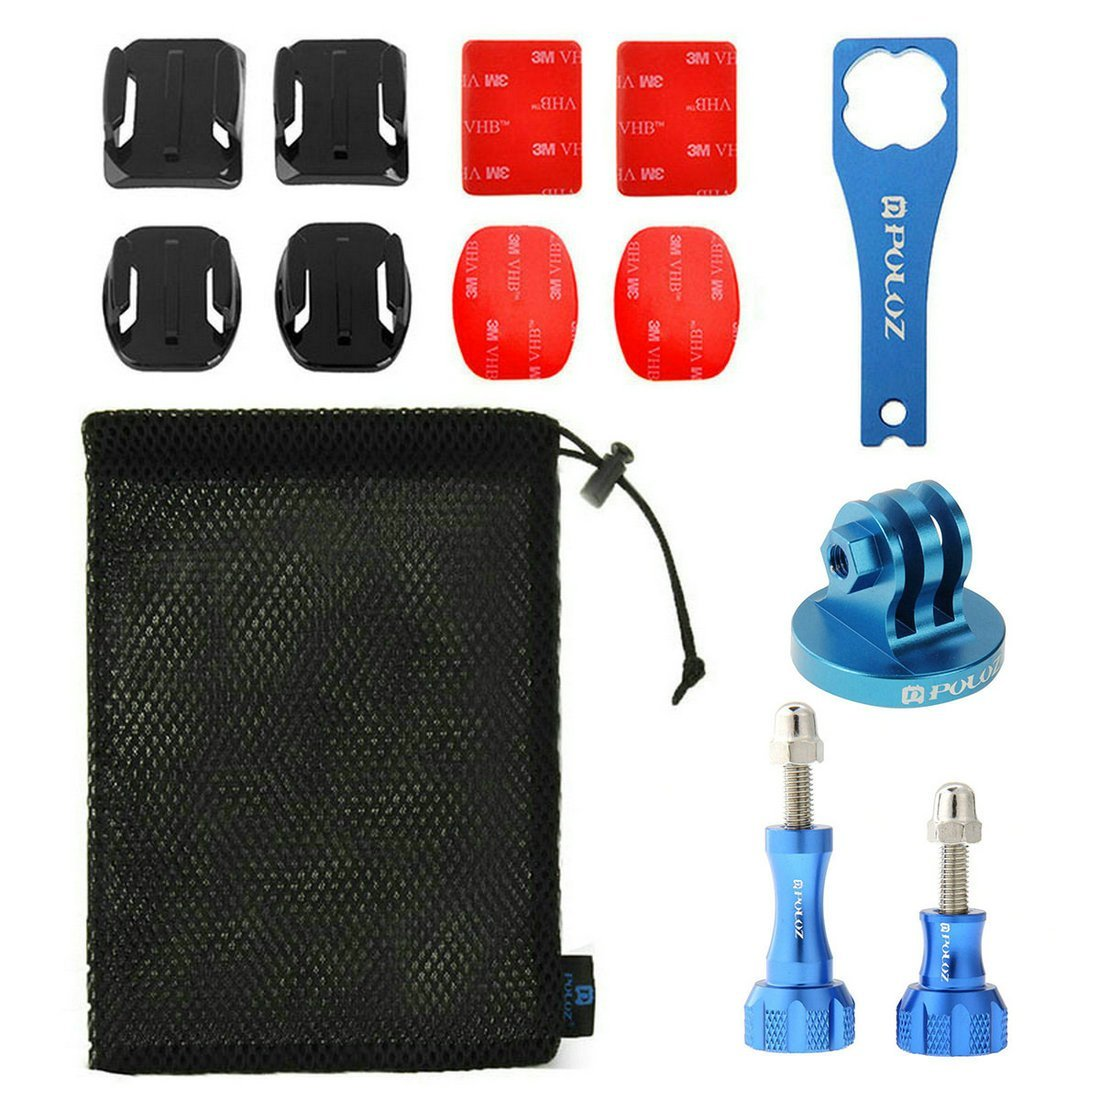 PULUZ 13 in 1 CNC Metal Accessories Combo Kits (Screws + Surface Mounts + Tripod Adapter+ Storage Bag + Wrench) for GoPro HERO6/5/5 Session/4 Session/4/3+/3/2/1, Xiaoyi and Other Action Cameras